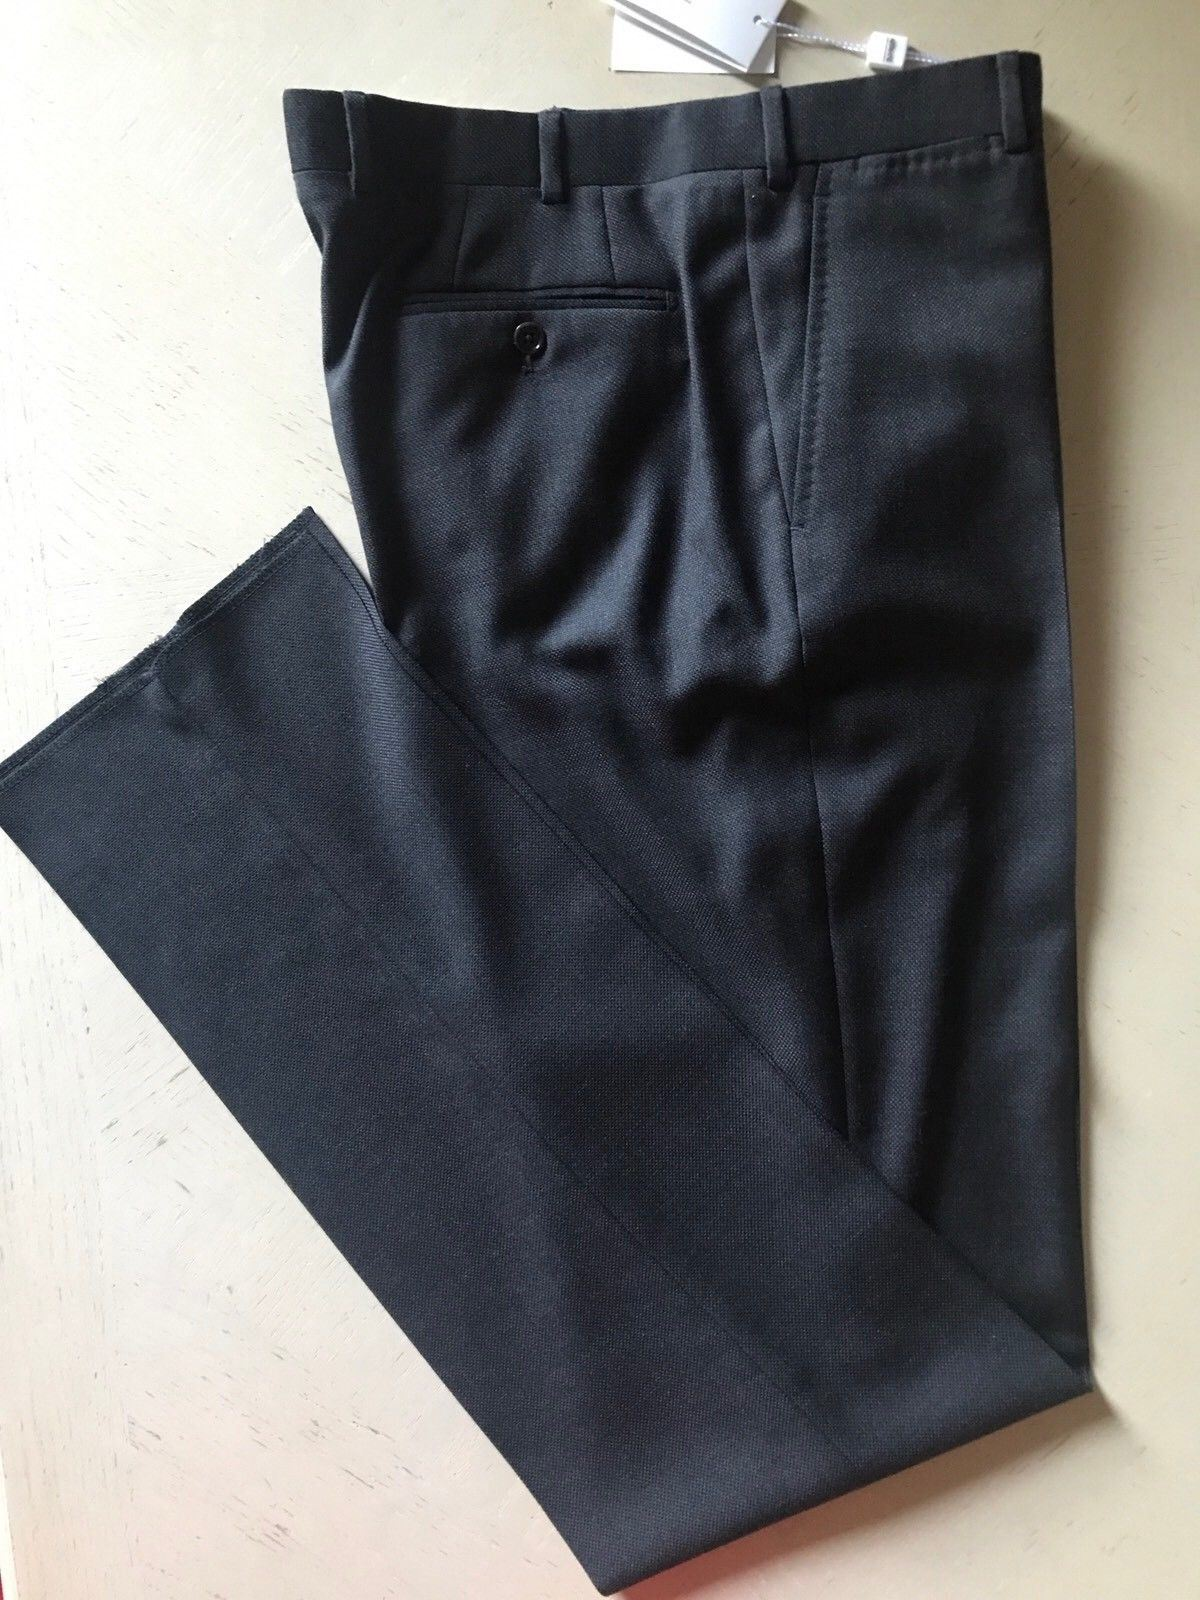 New $395 Armani Collezioni Men's Pants Dark Gray 34 US ( 54 Eu )